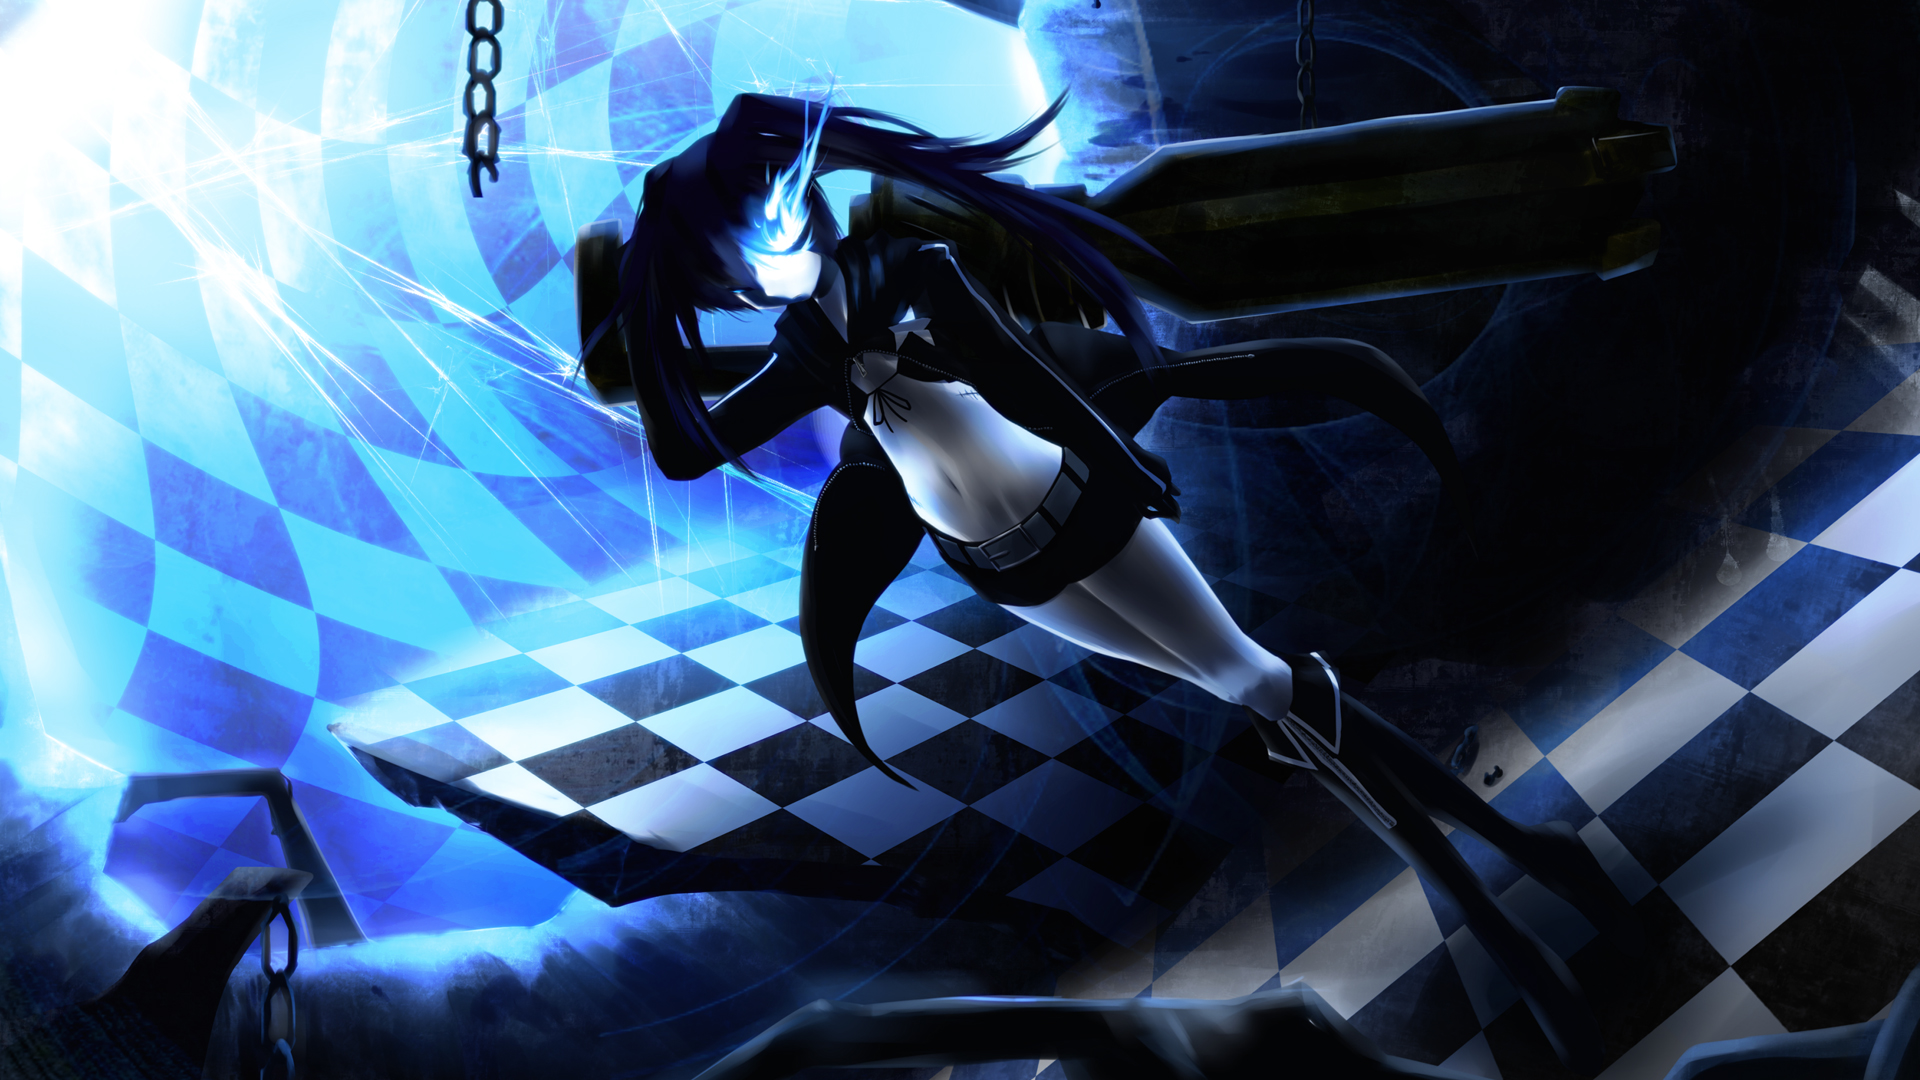 Free Download Black Rock Shooter Full Hd Wallpaper And Background